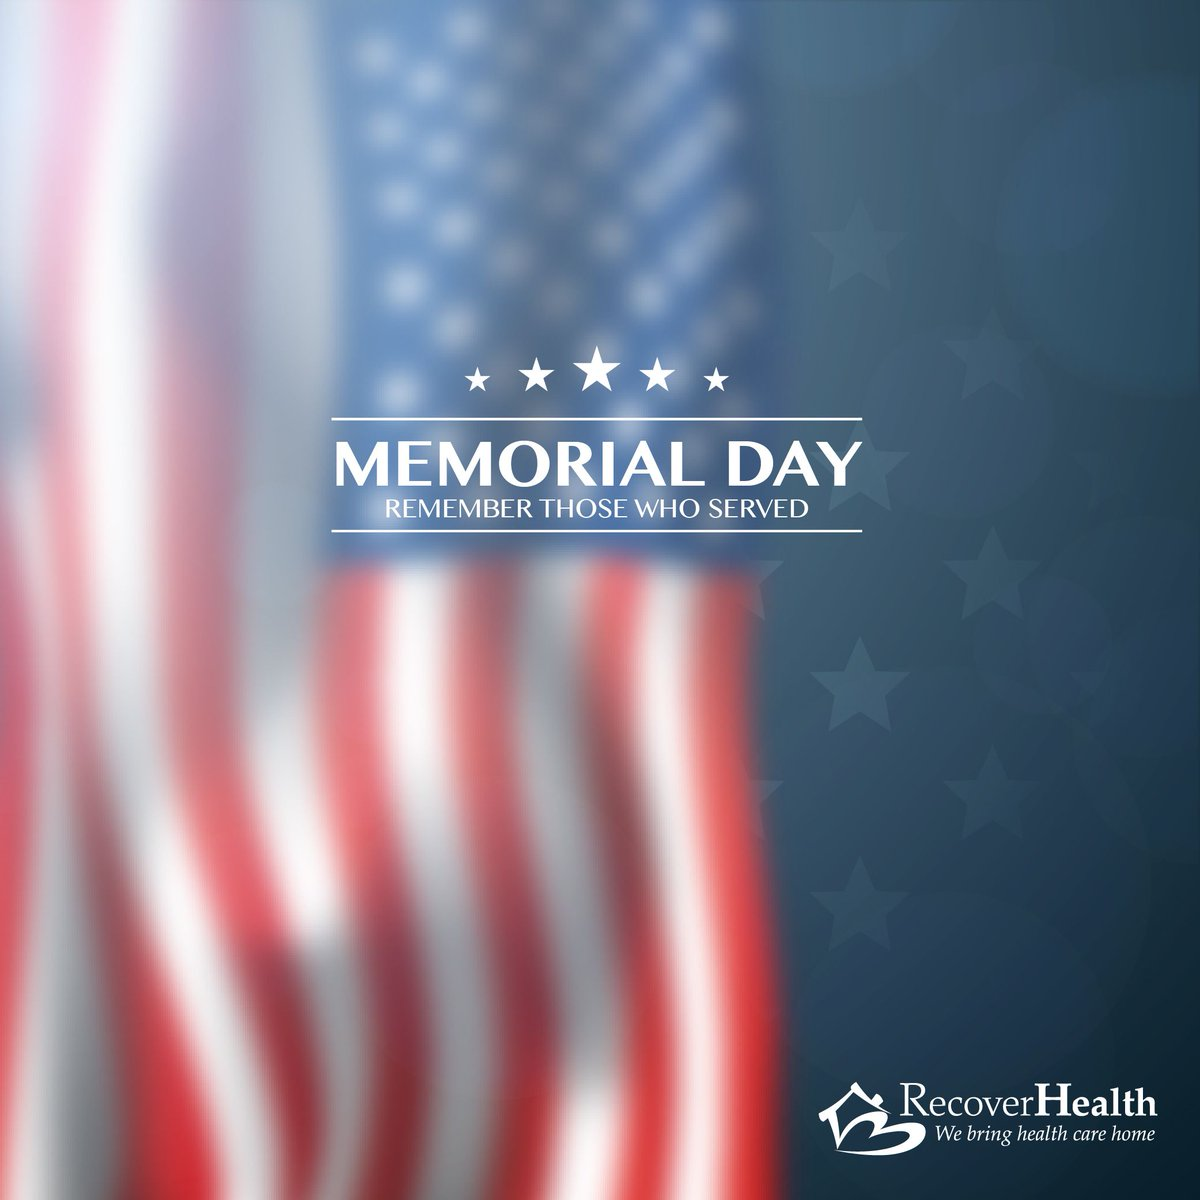 recover health on twitter happy memorial day from everyone at